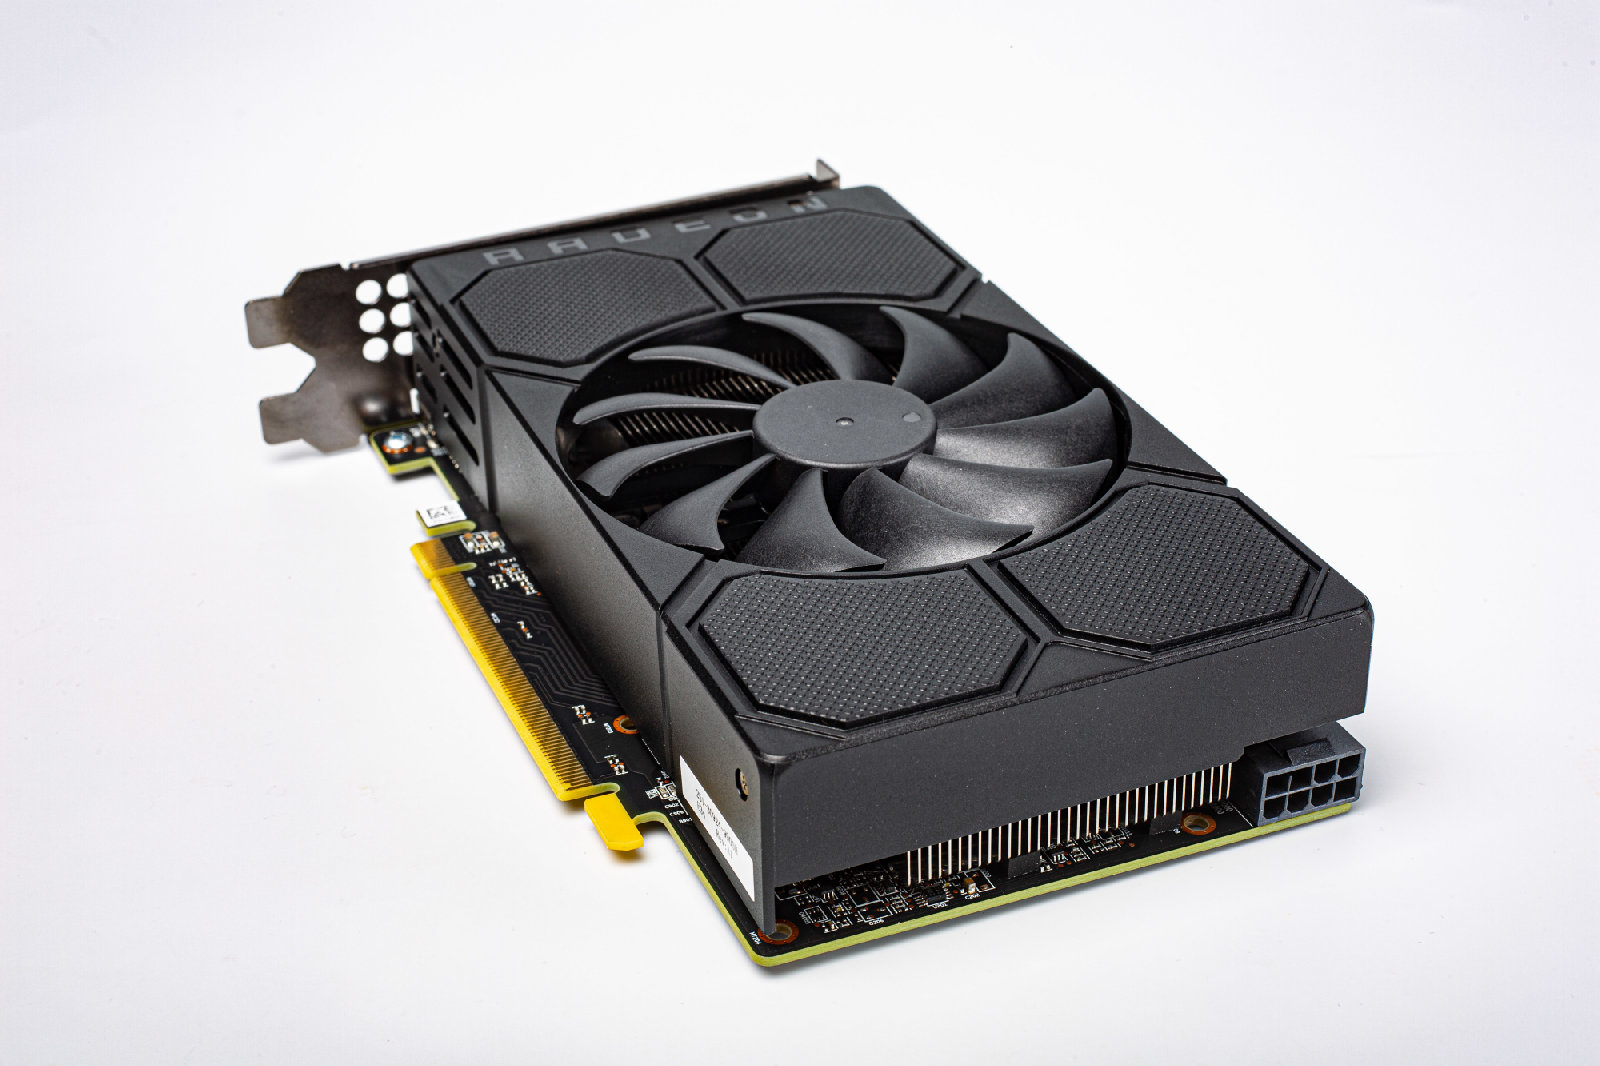 Existence of the AMD Radeon RX 5500 XT confirmed by GPU-Z